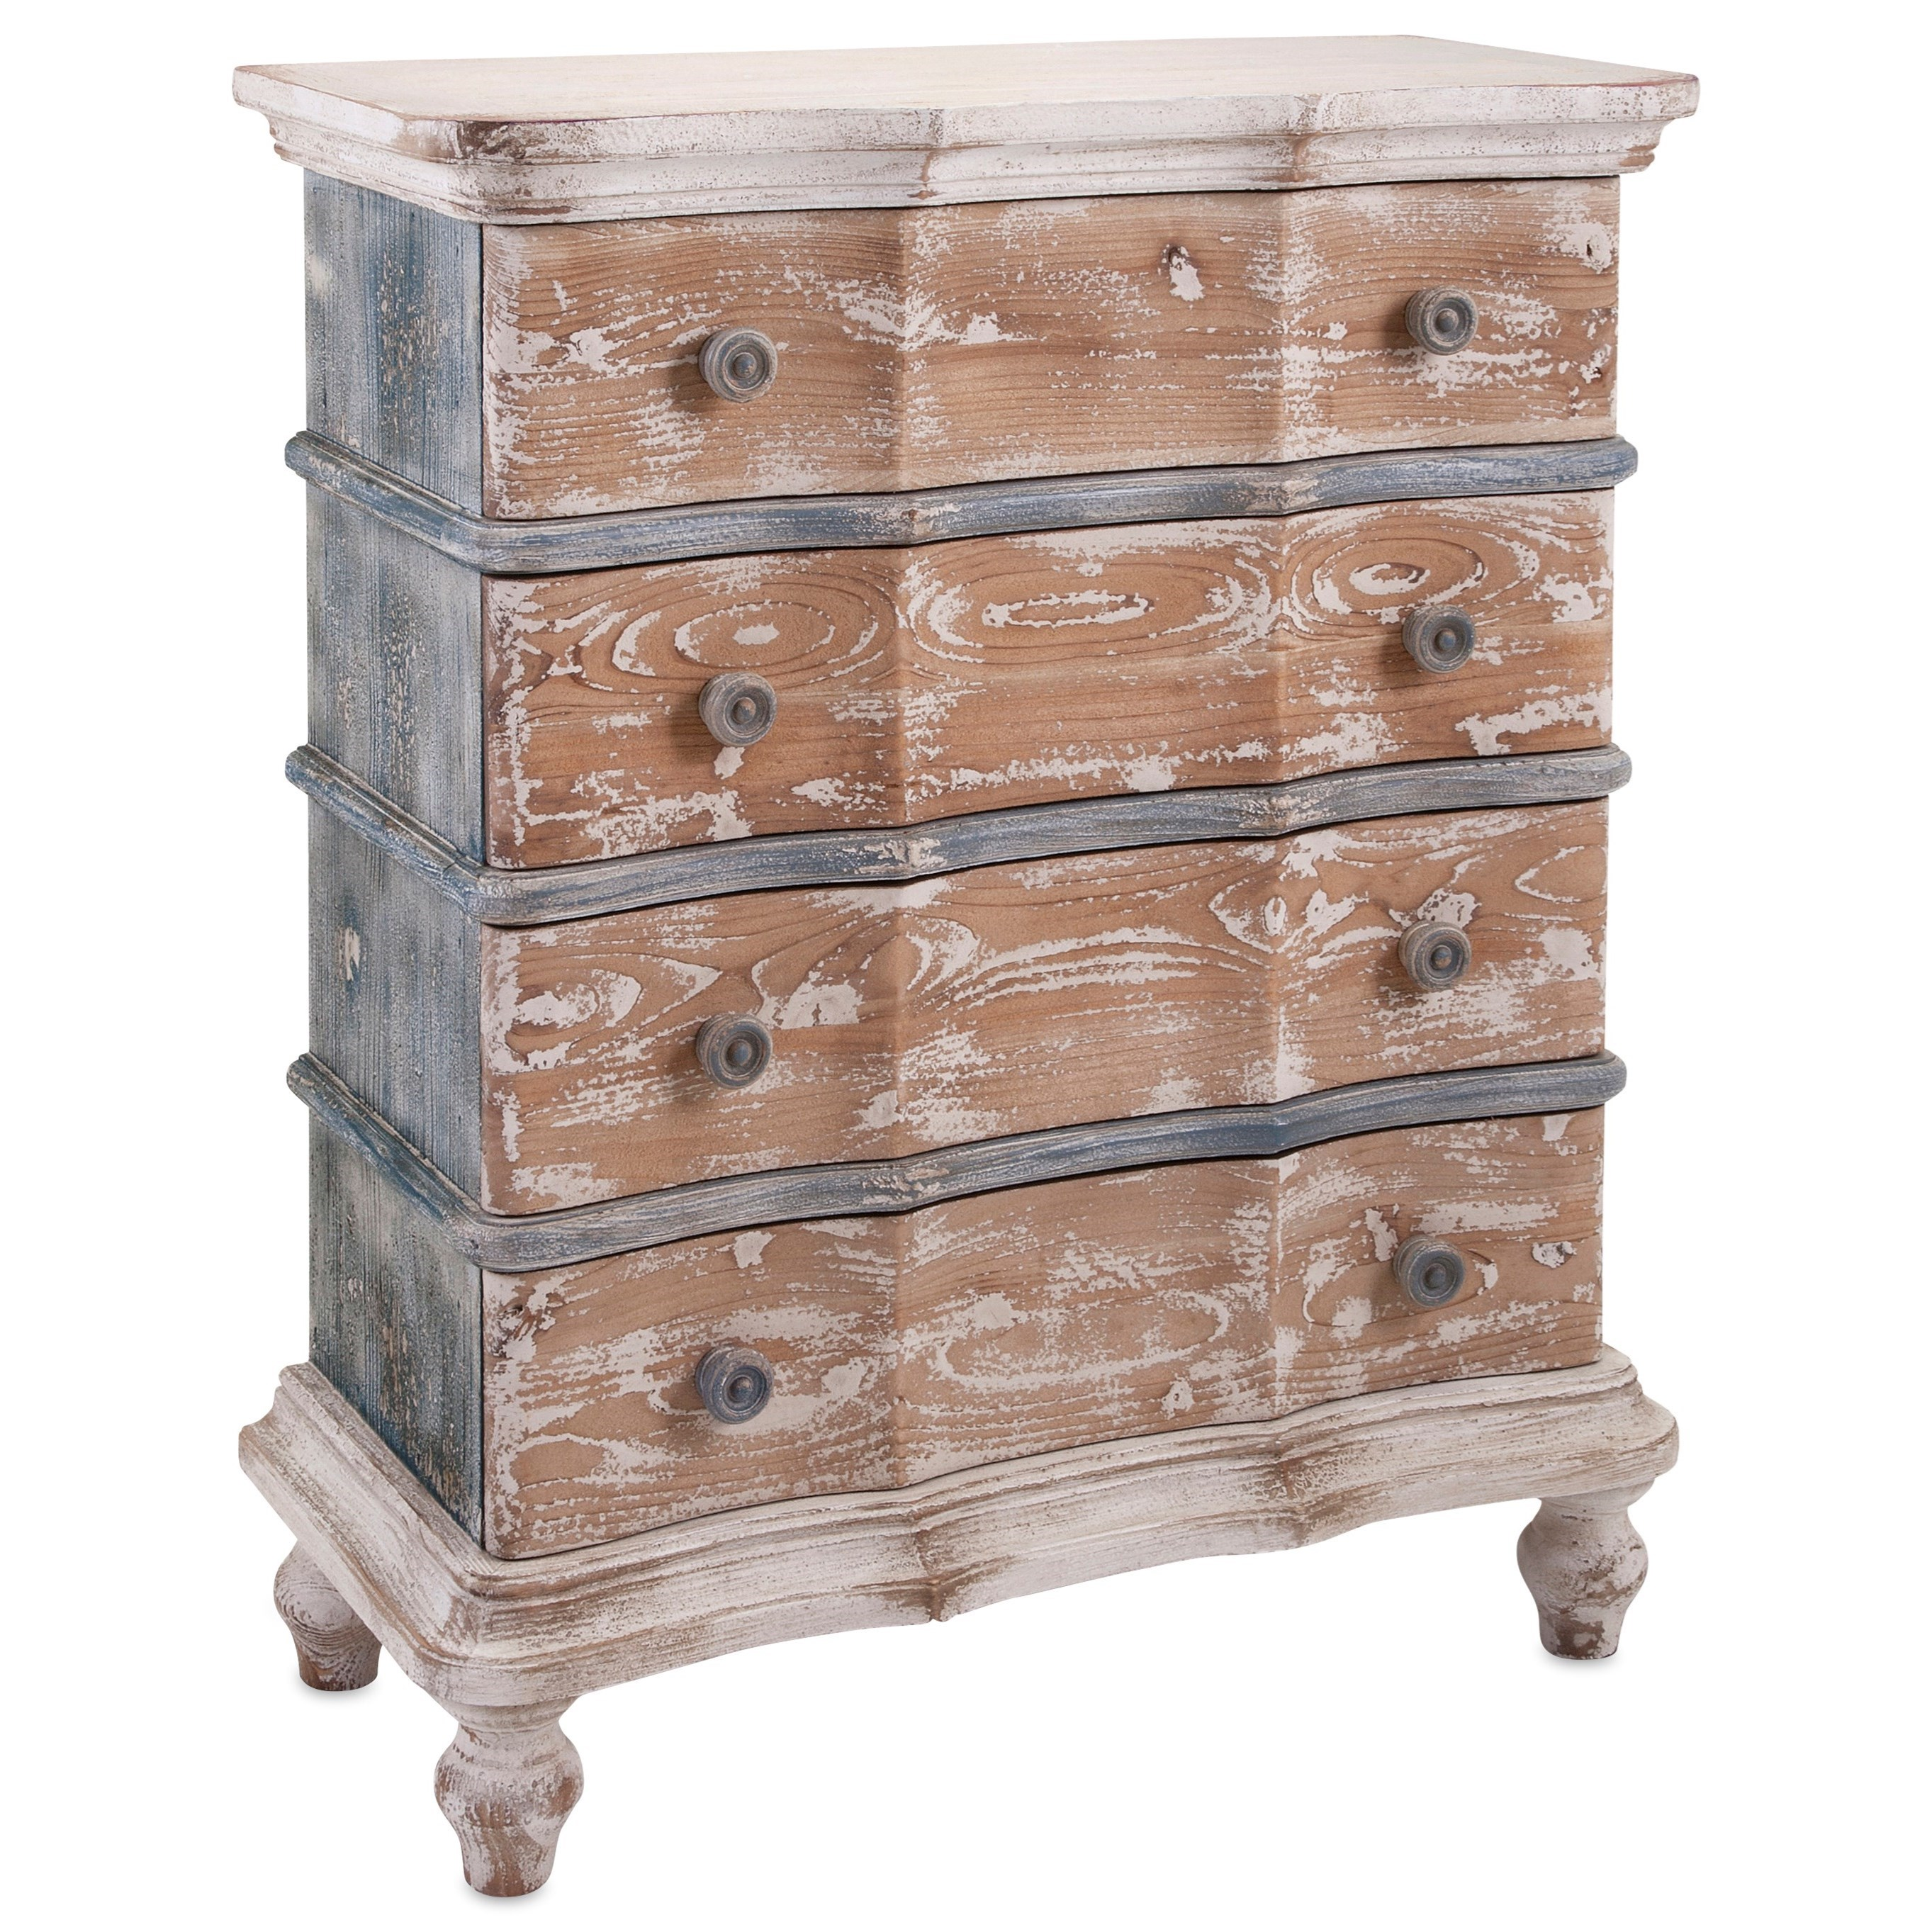 Accent Tables and Cabinets Tansey 4-Drawer Cabinet by IMAX Worldwide Home at Alison Craig Home Furnishings